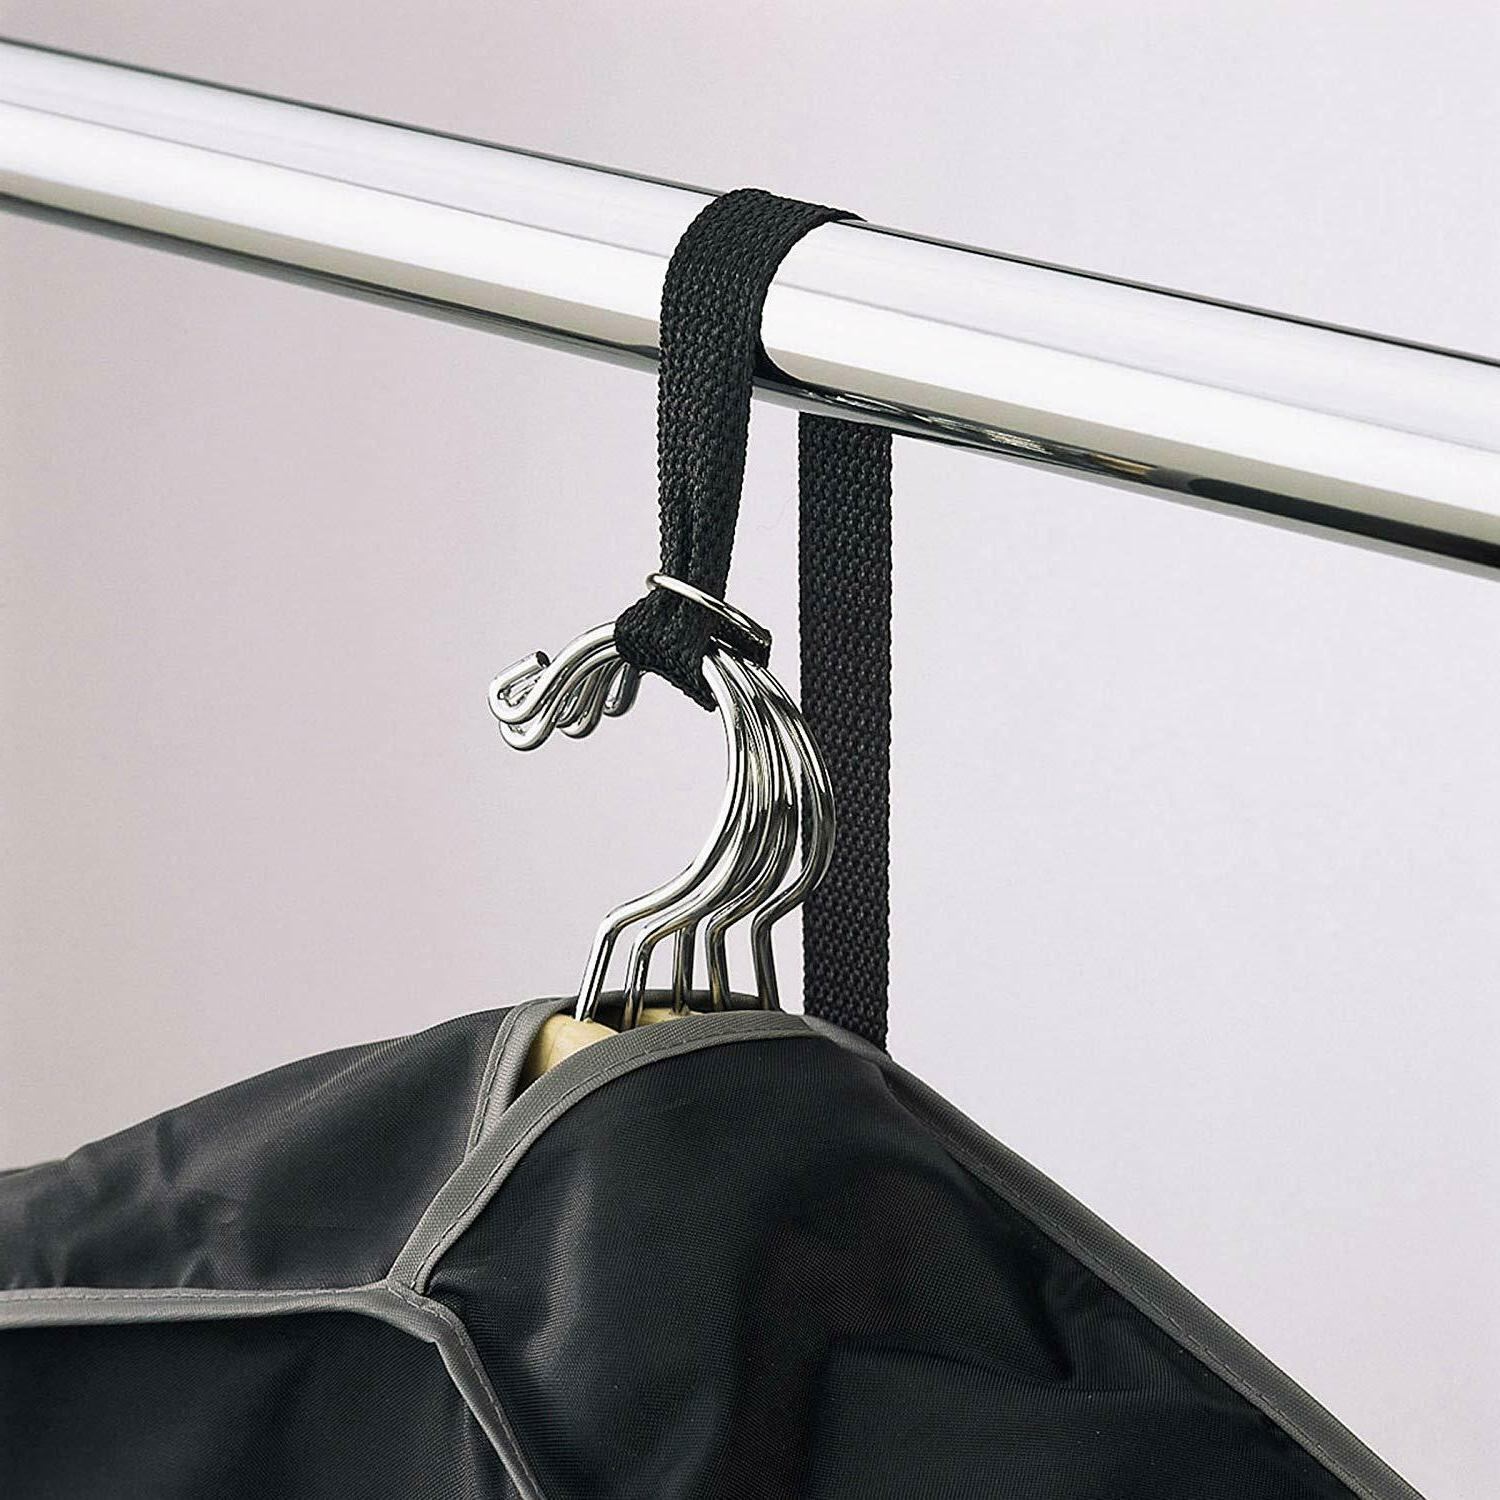 Suit Garment XL Luggage Hanging Clothes